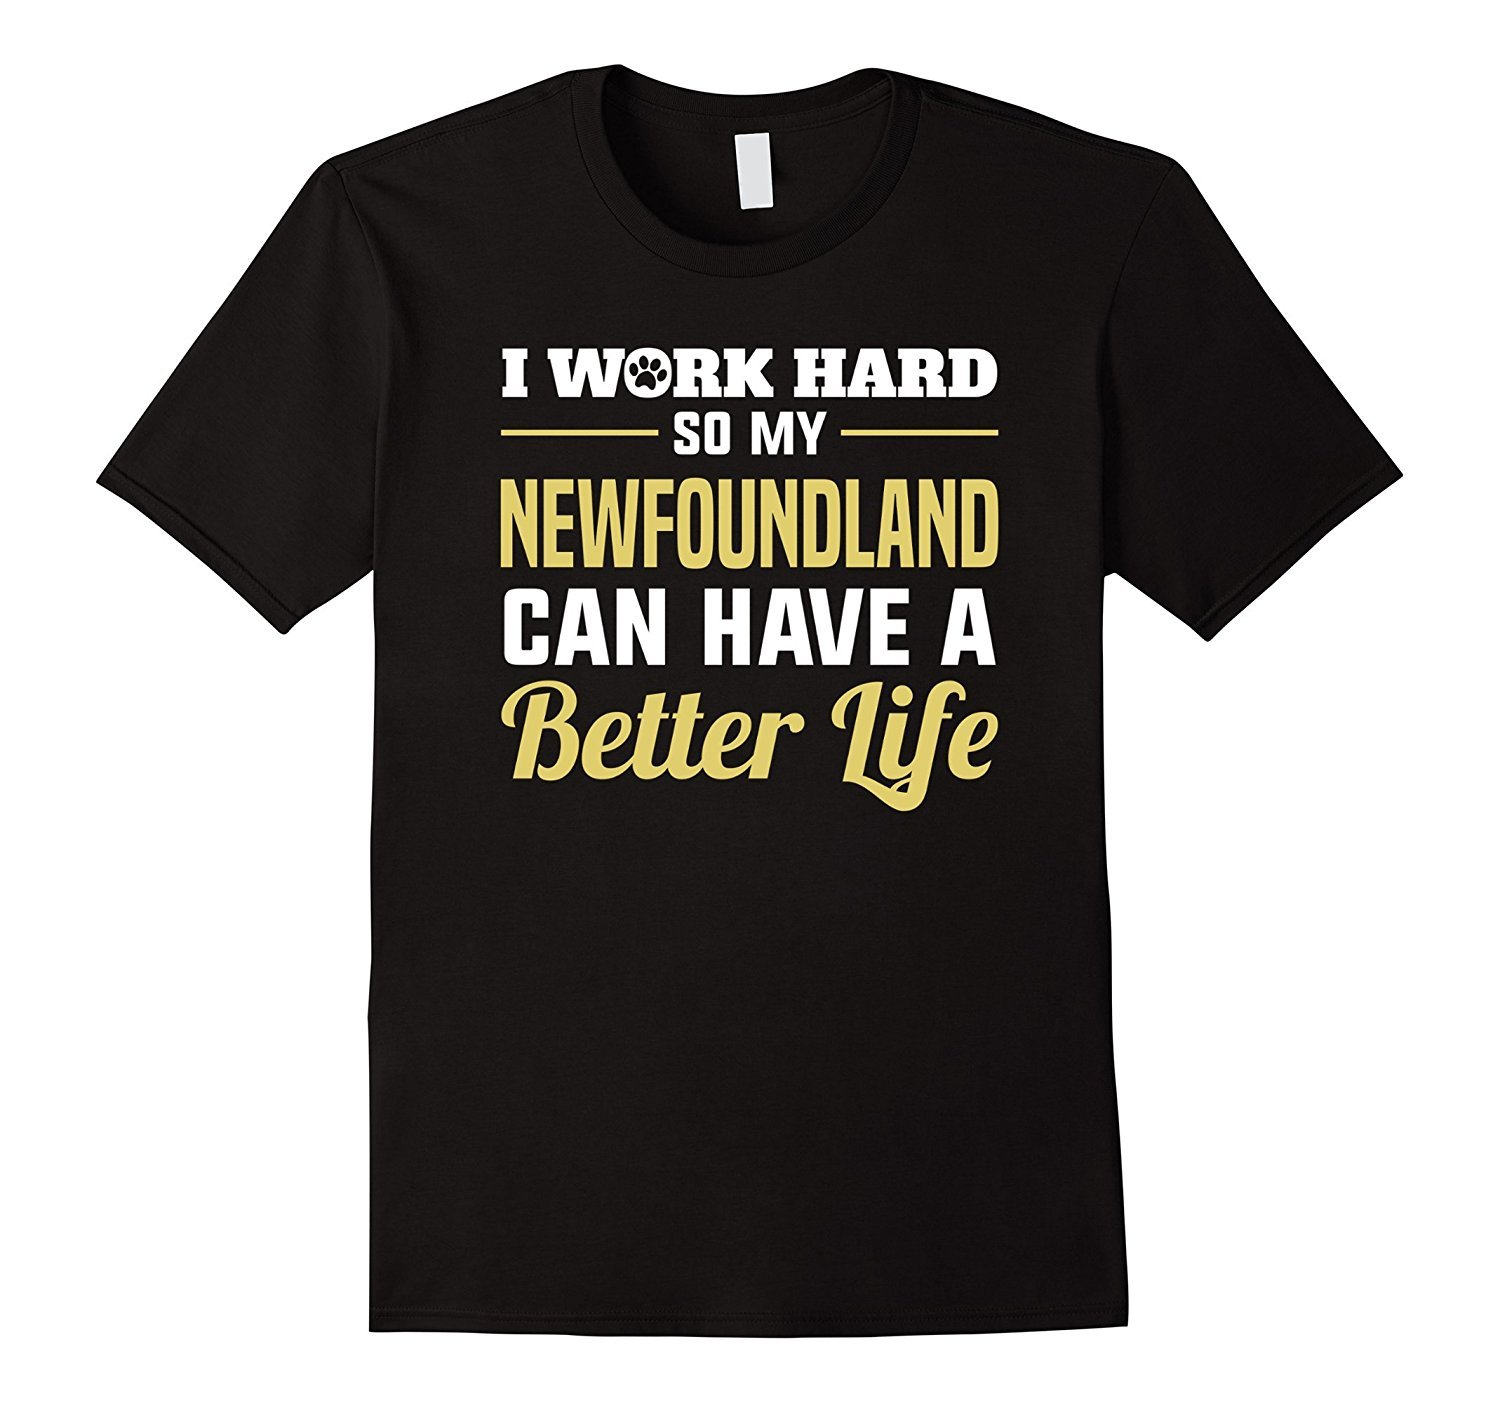 newfoundland men 100% free online dating in newfoundland 1,500,000 daily active members.